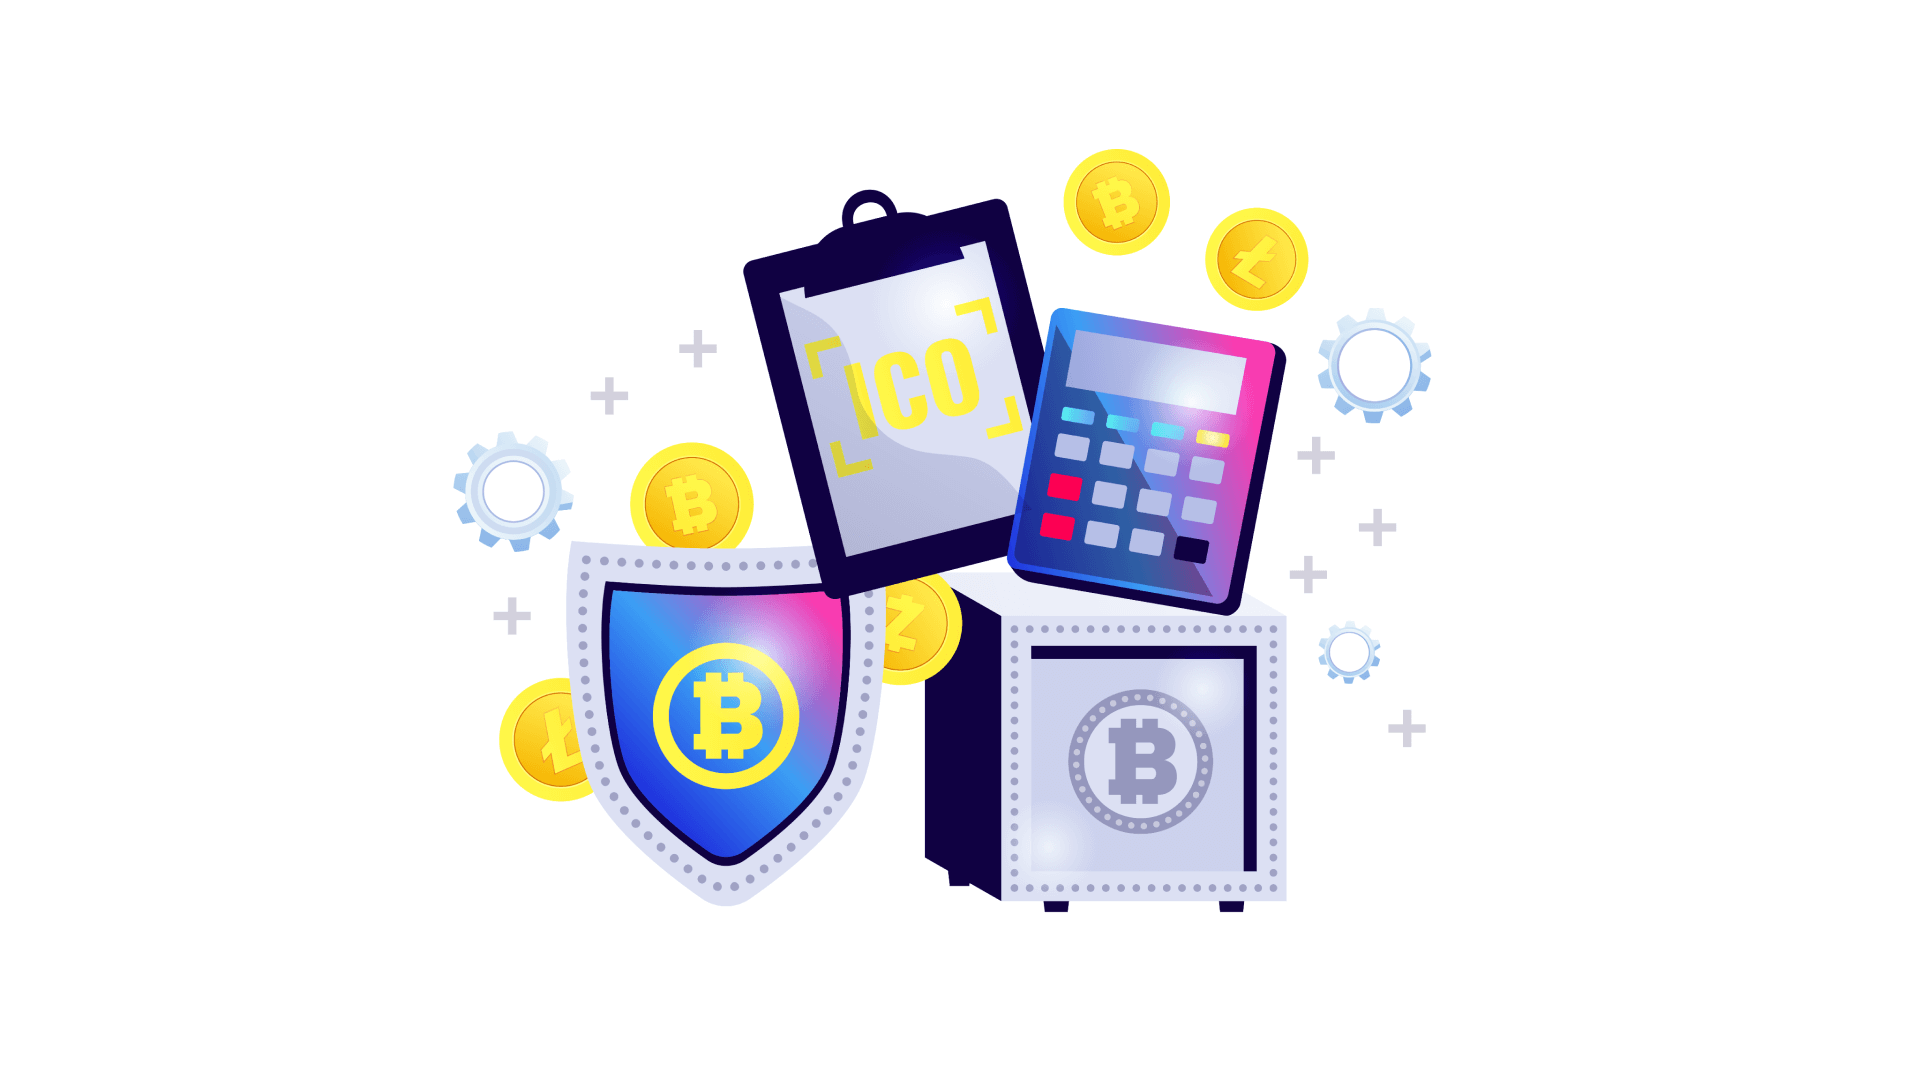 An ICO works like regular crowdfunding, but for digital assets.